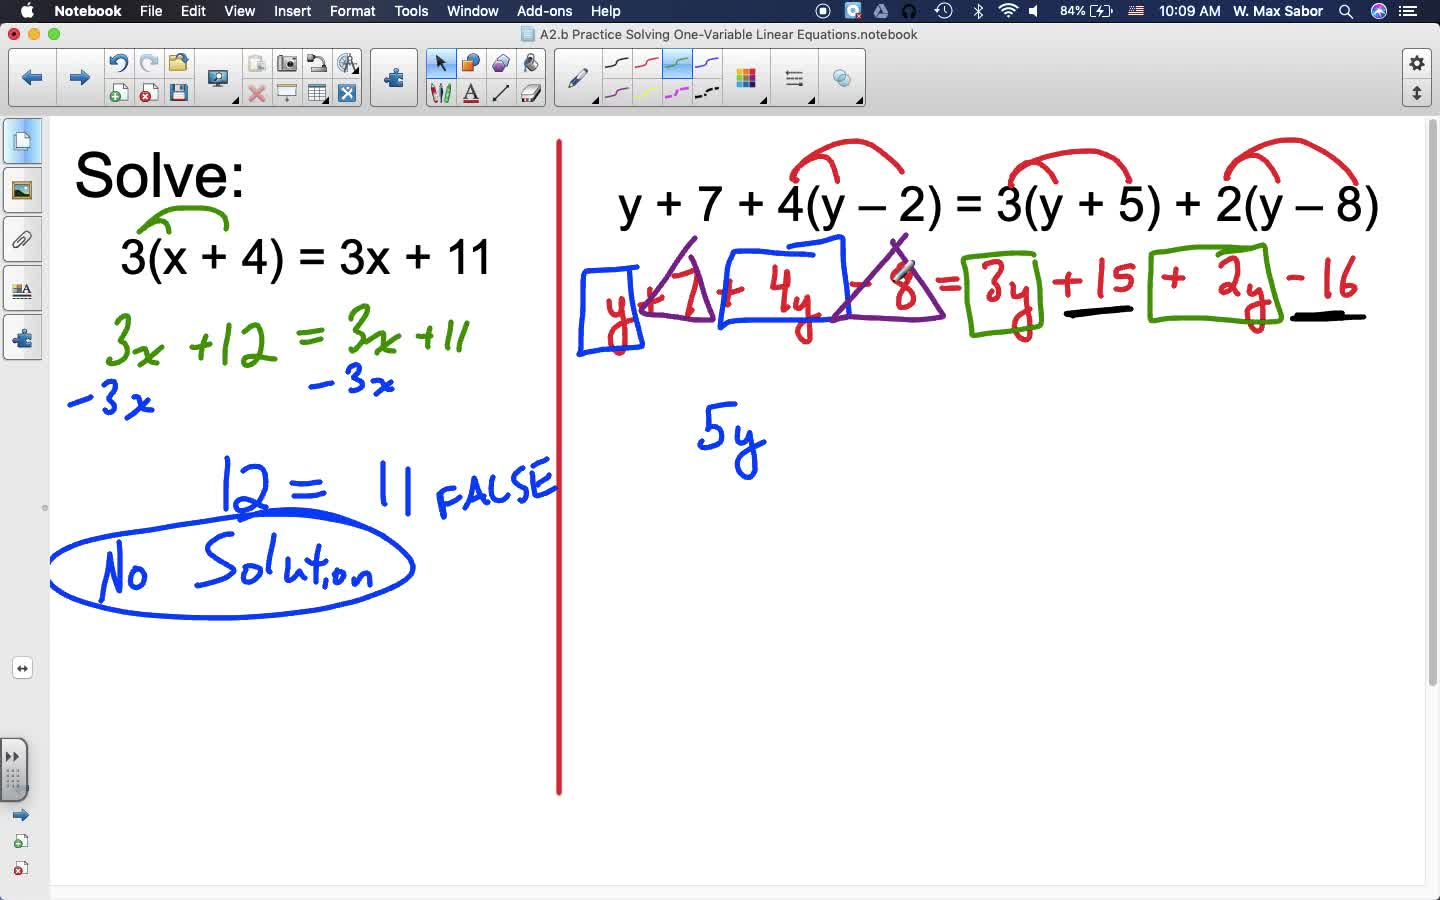 A2.b Practice Solving One-Variable Linear Equations